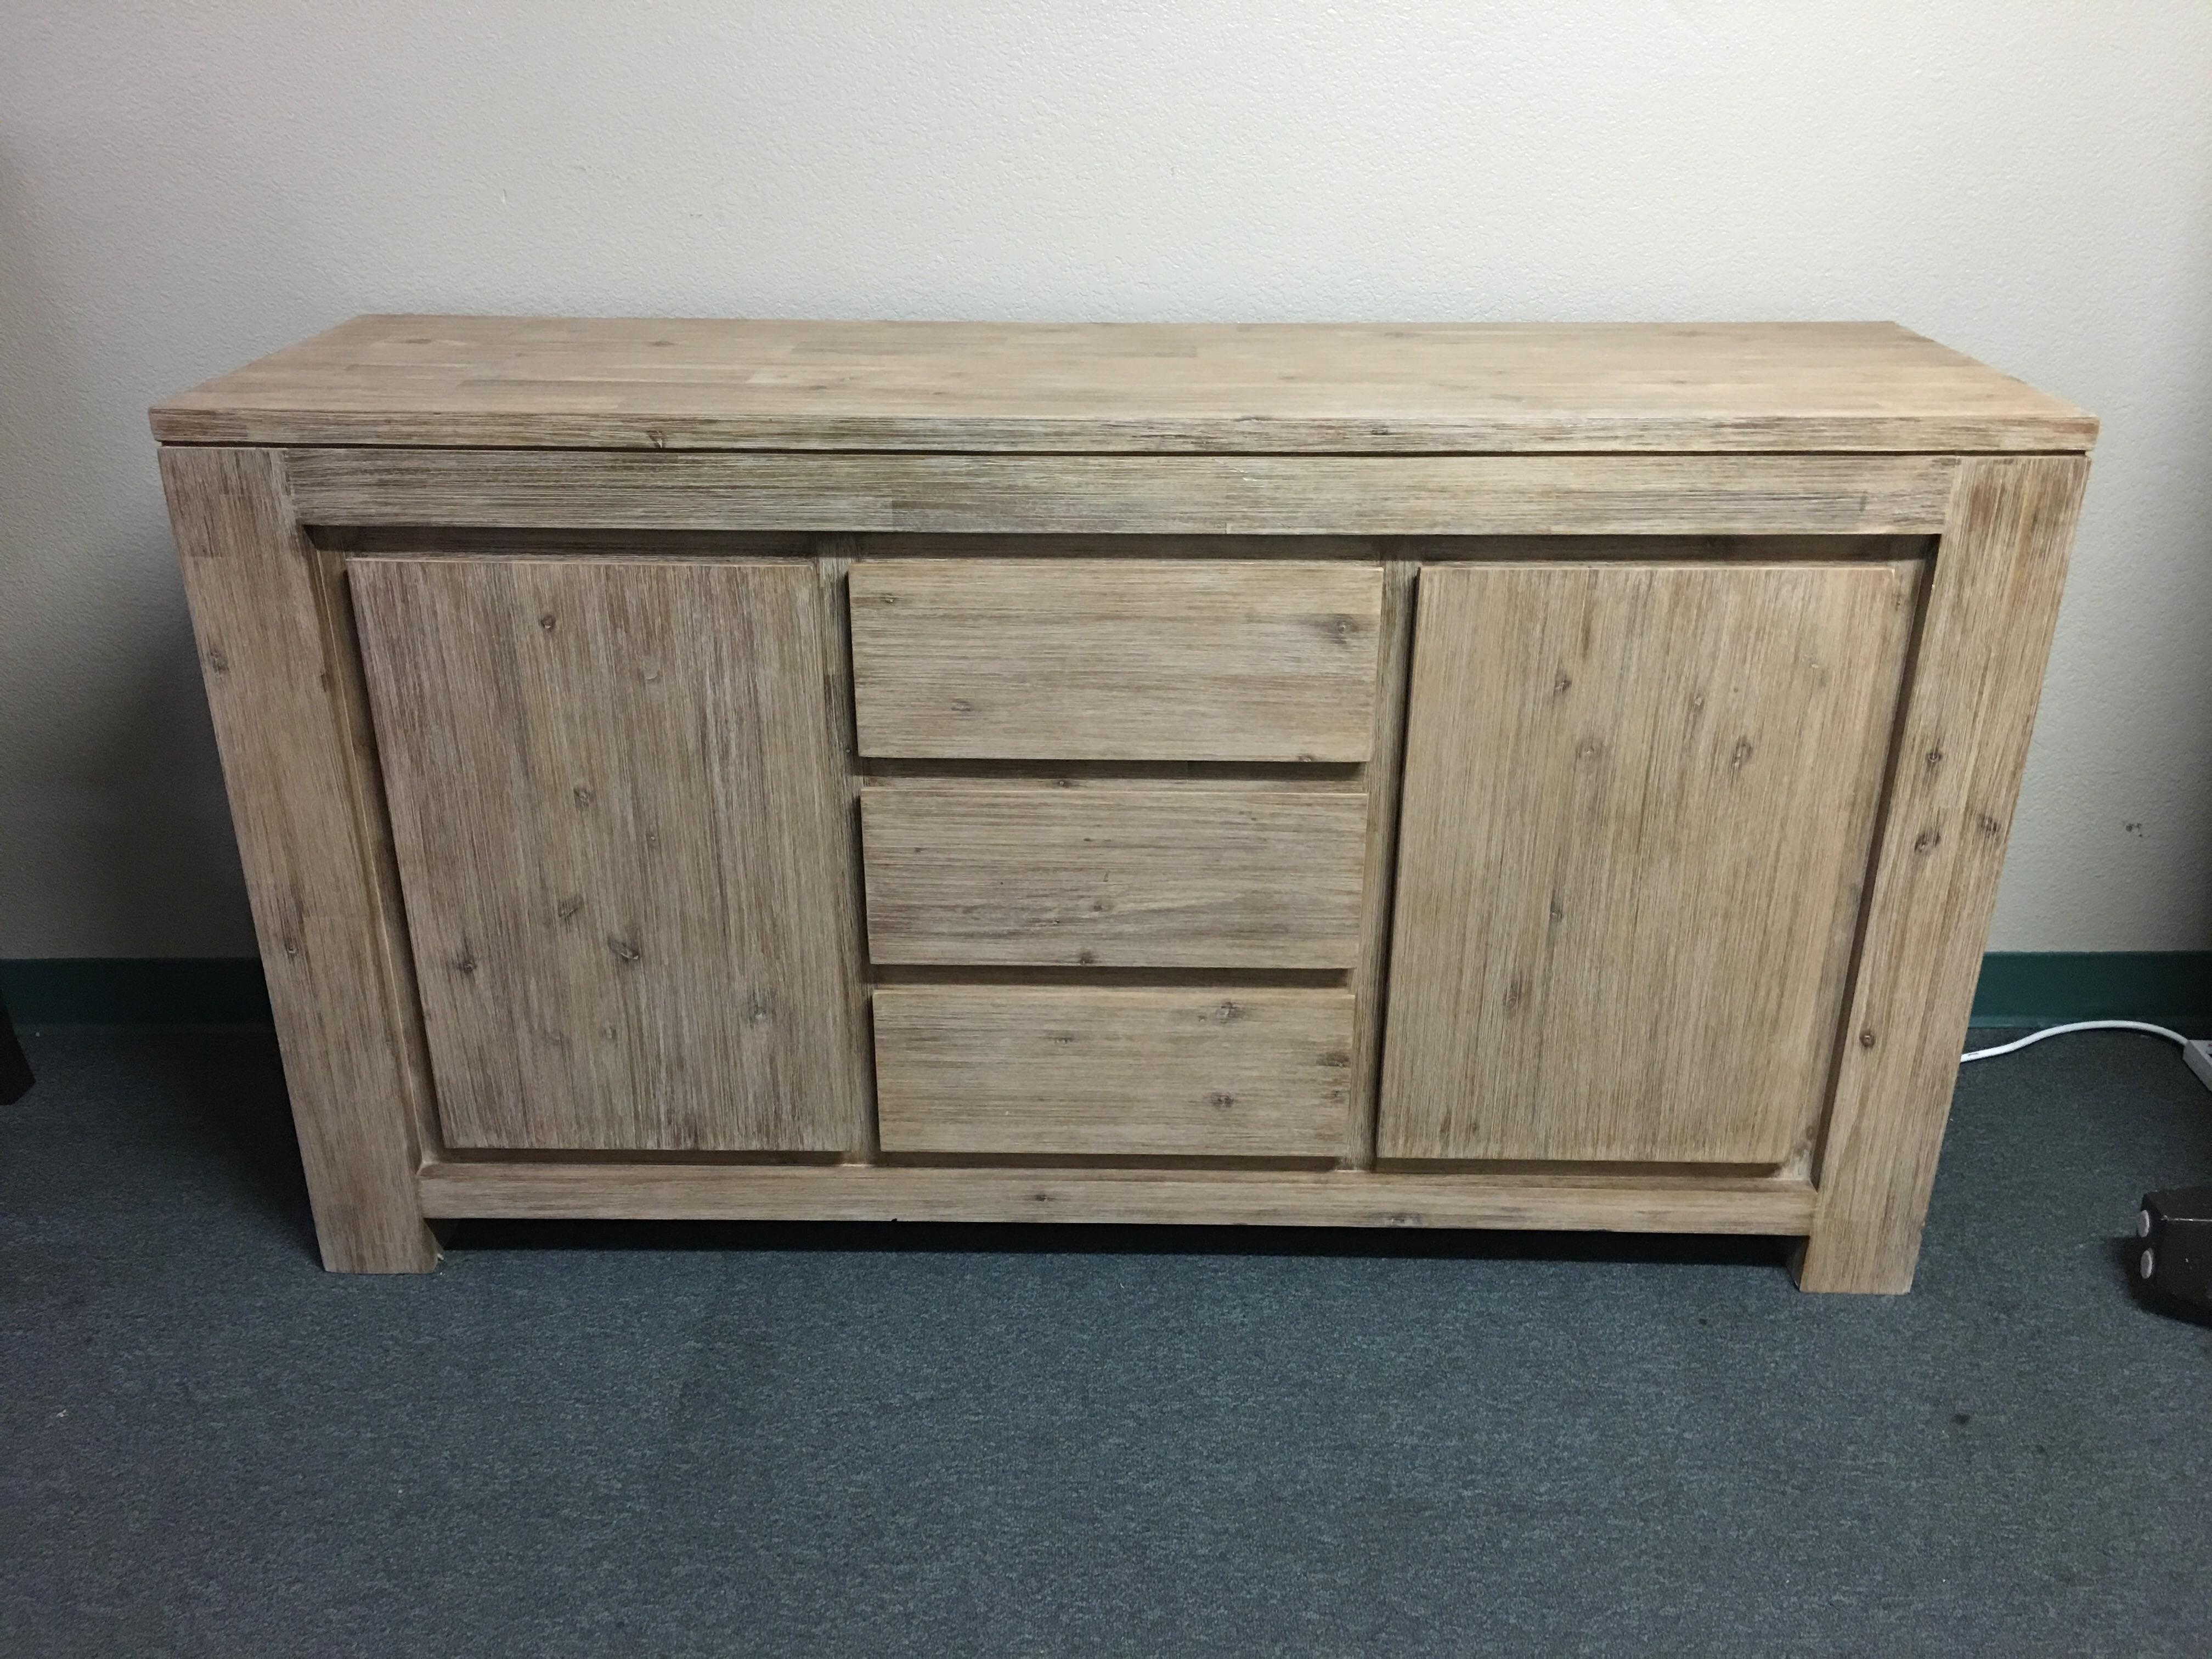 Ordinaire Marvelous Pickled Finish Furniture #22   Pickled Finish Wood Cabinet    Image 2 Of 6